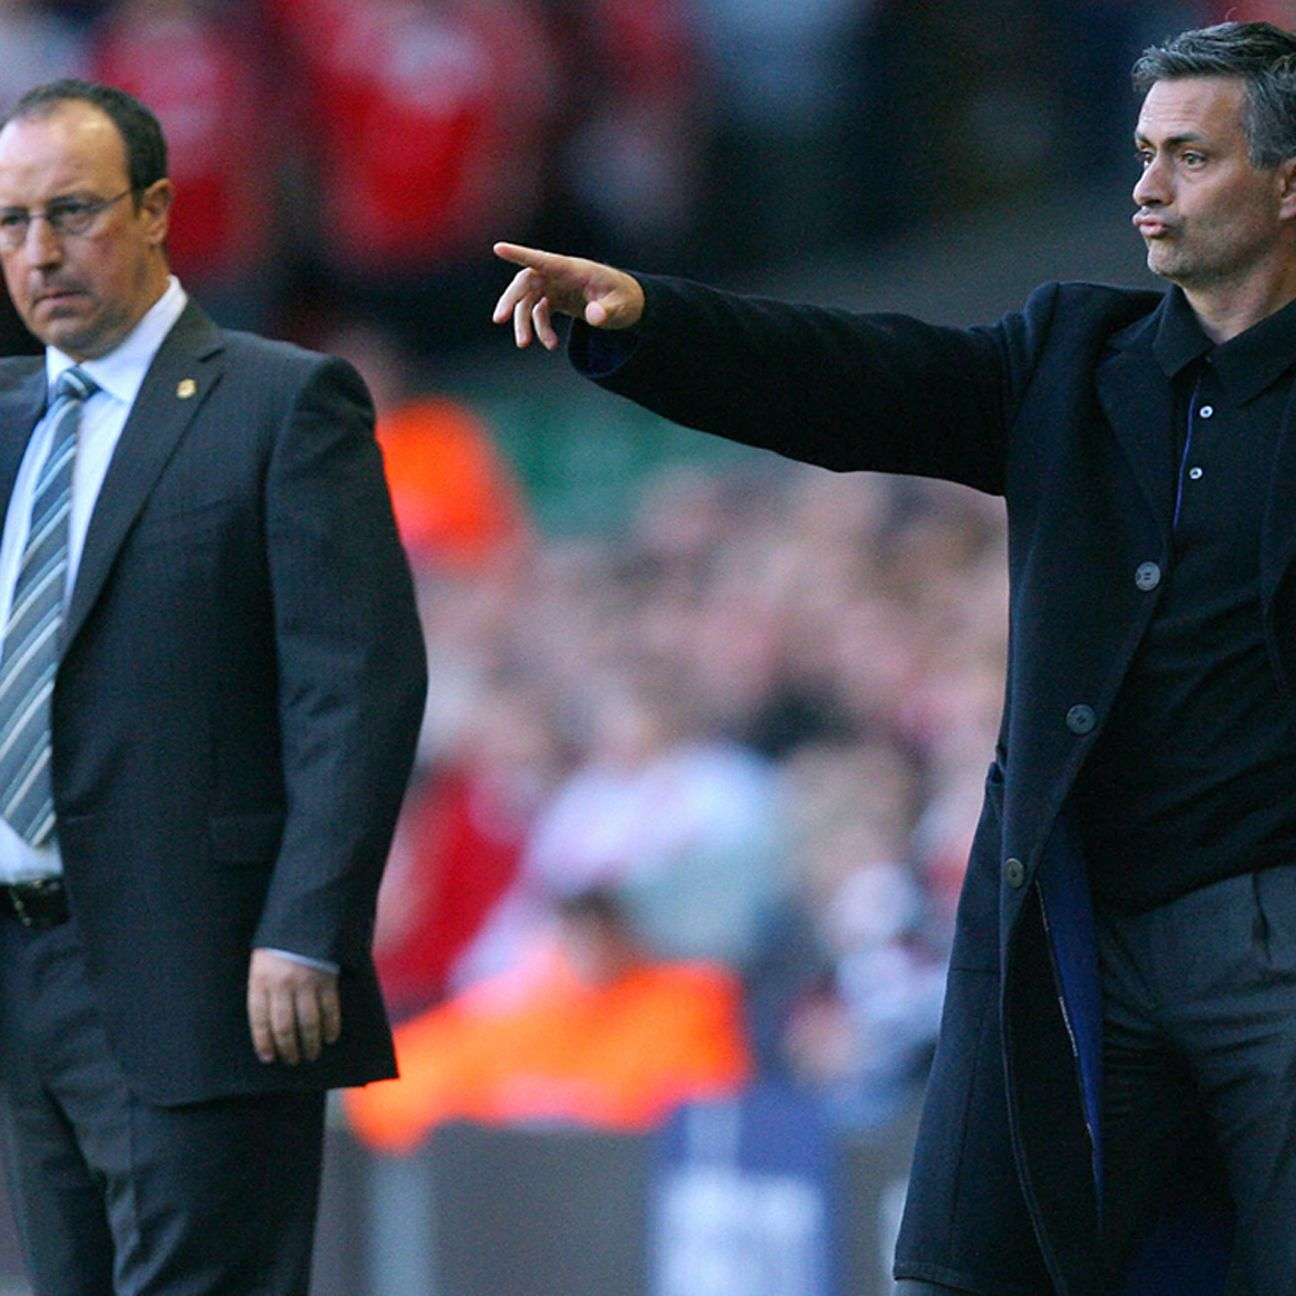 'Respectful' Benitez ready to lead Newcastle vs. rival Mourinho's United